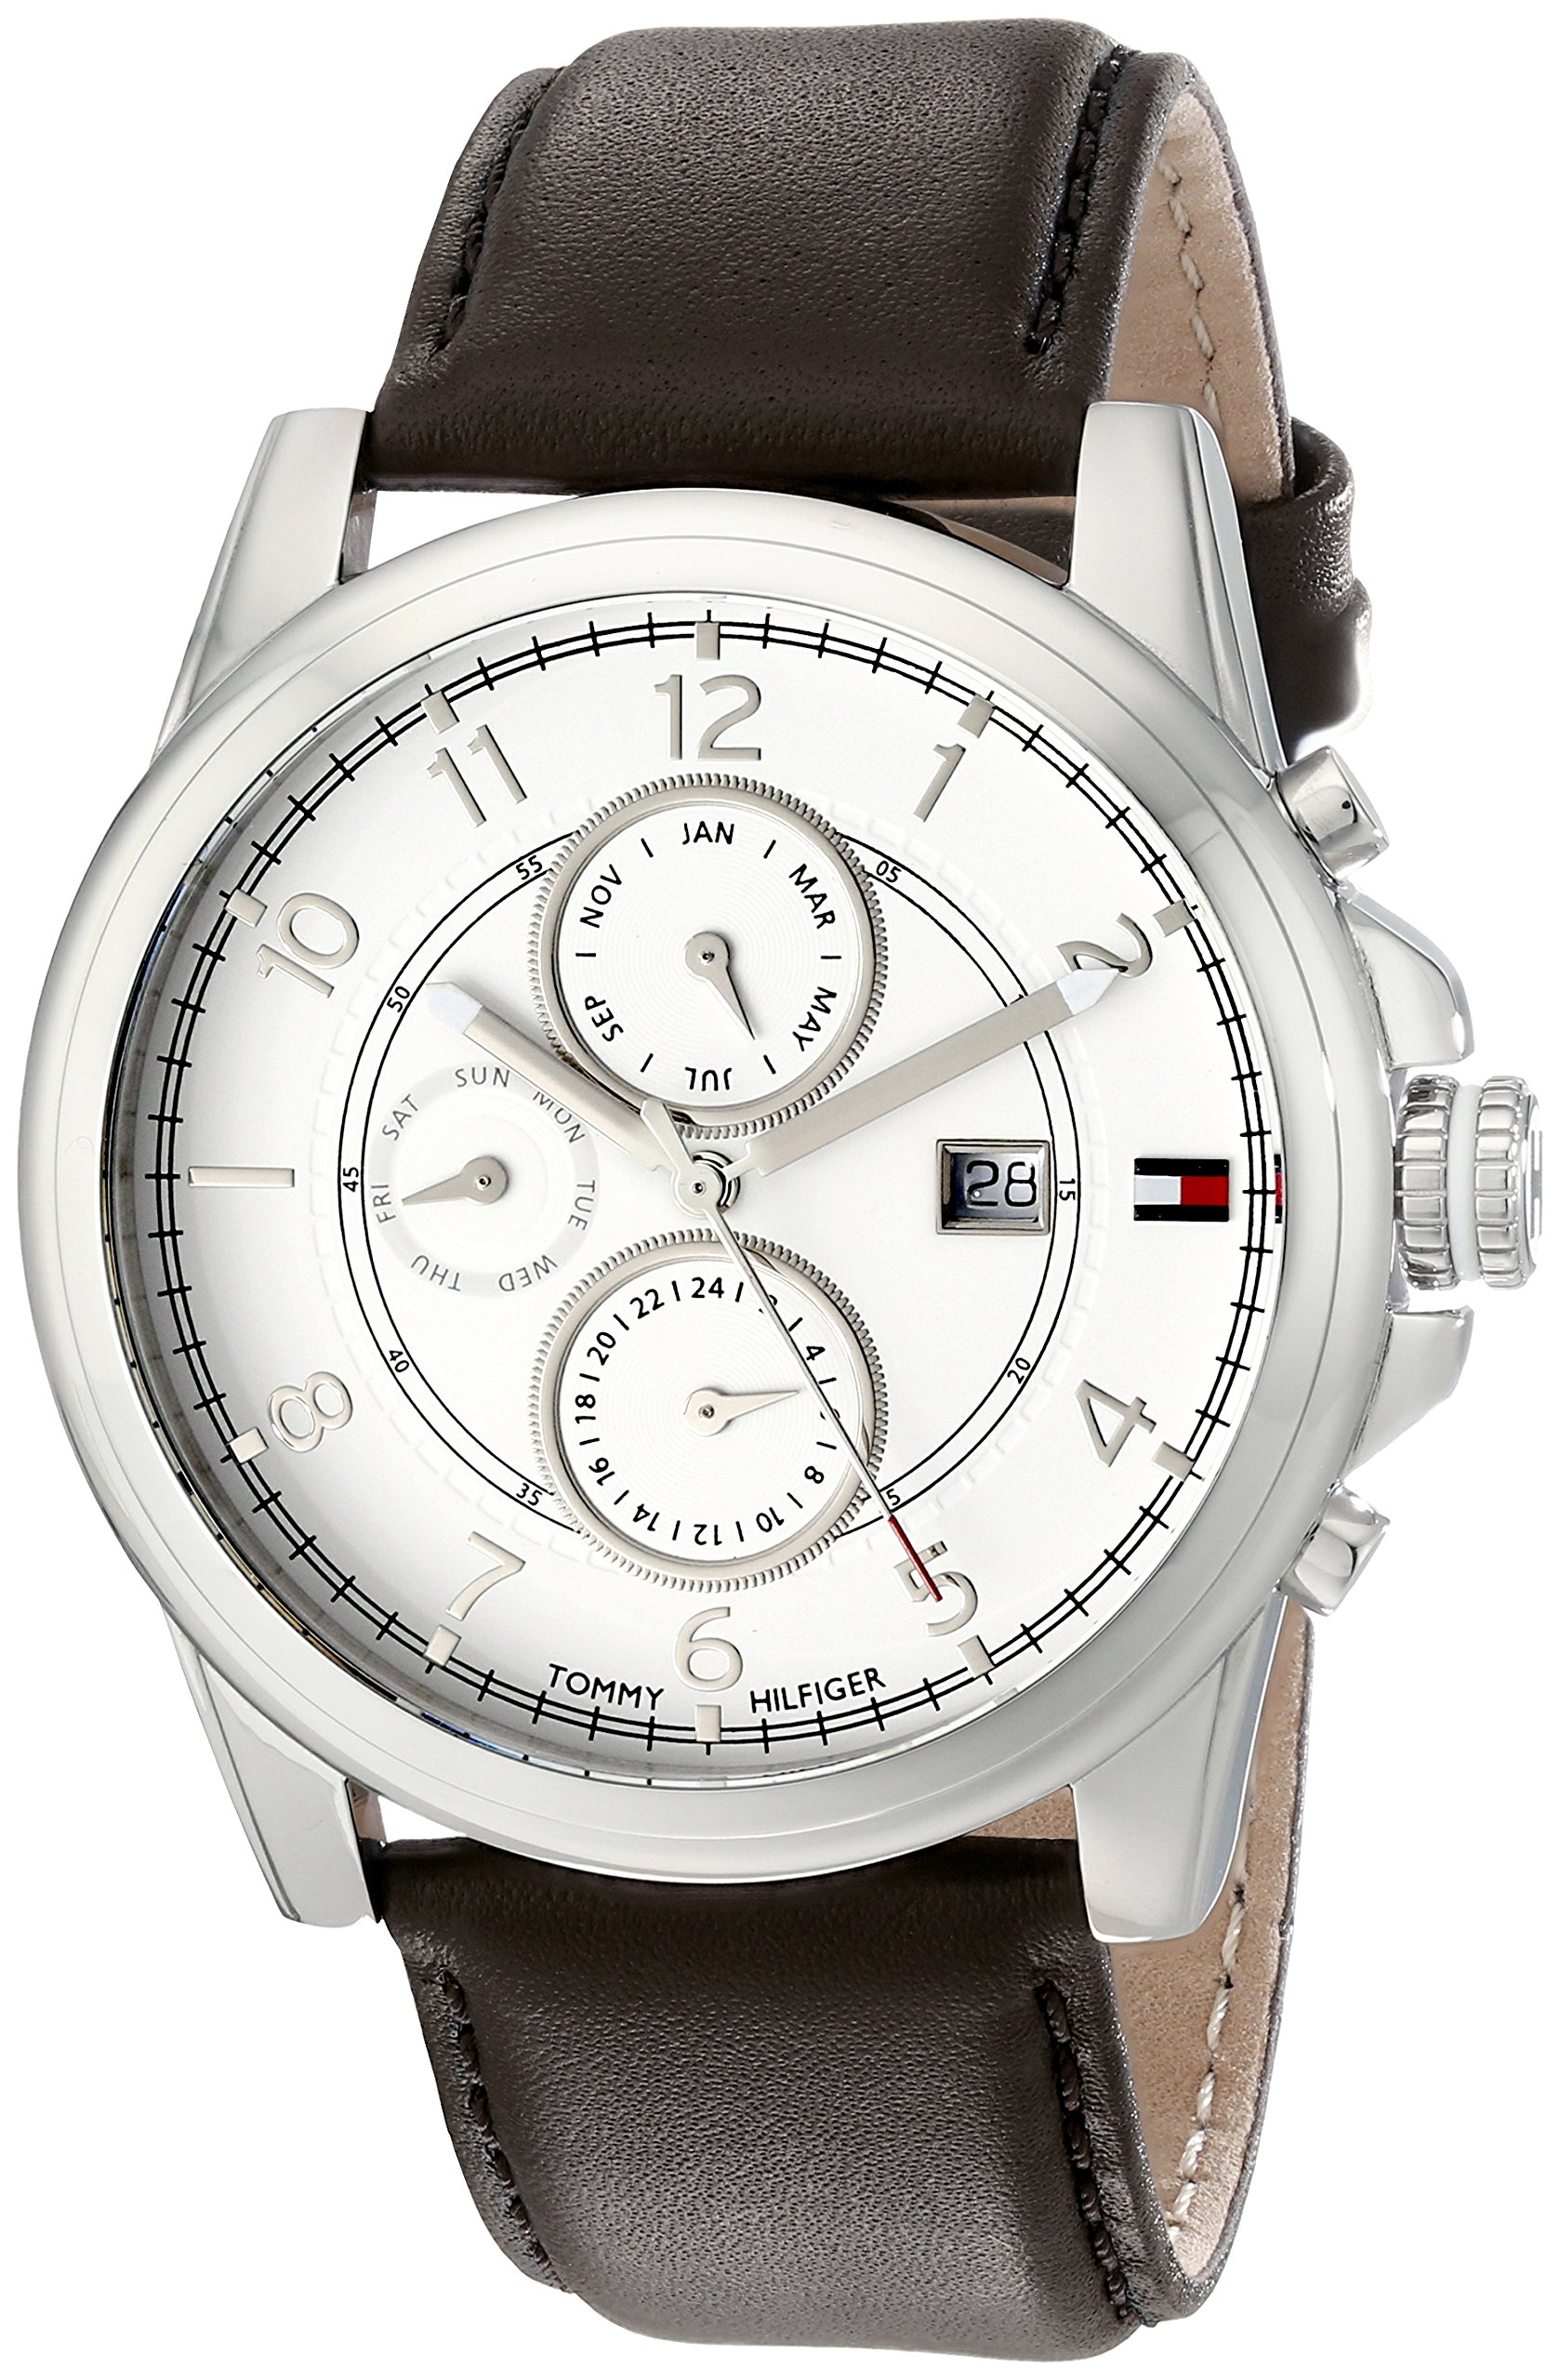 Tommy Hilfiger Men's 1710294 Stainless Steel Watch with Brown Leather Band